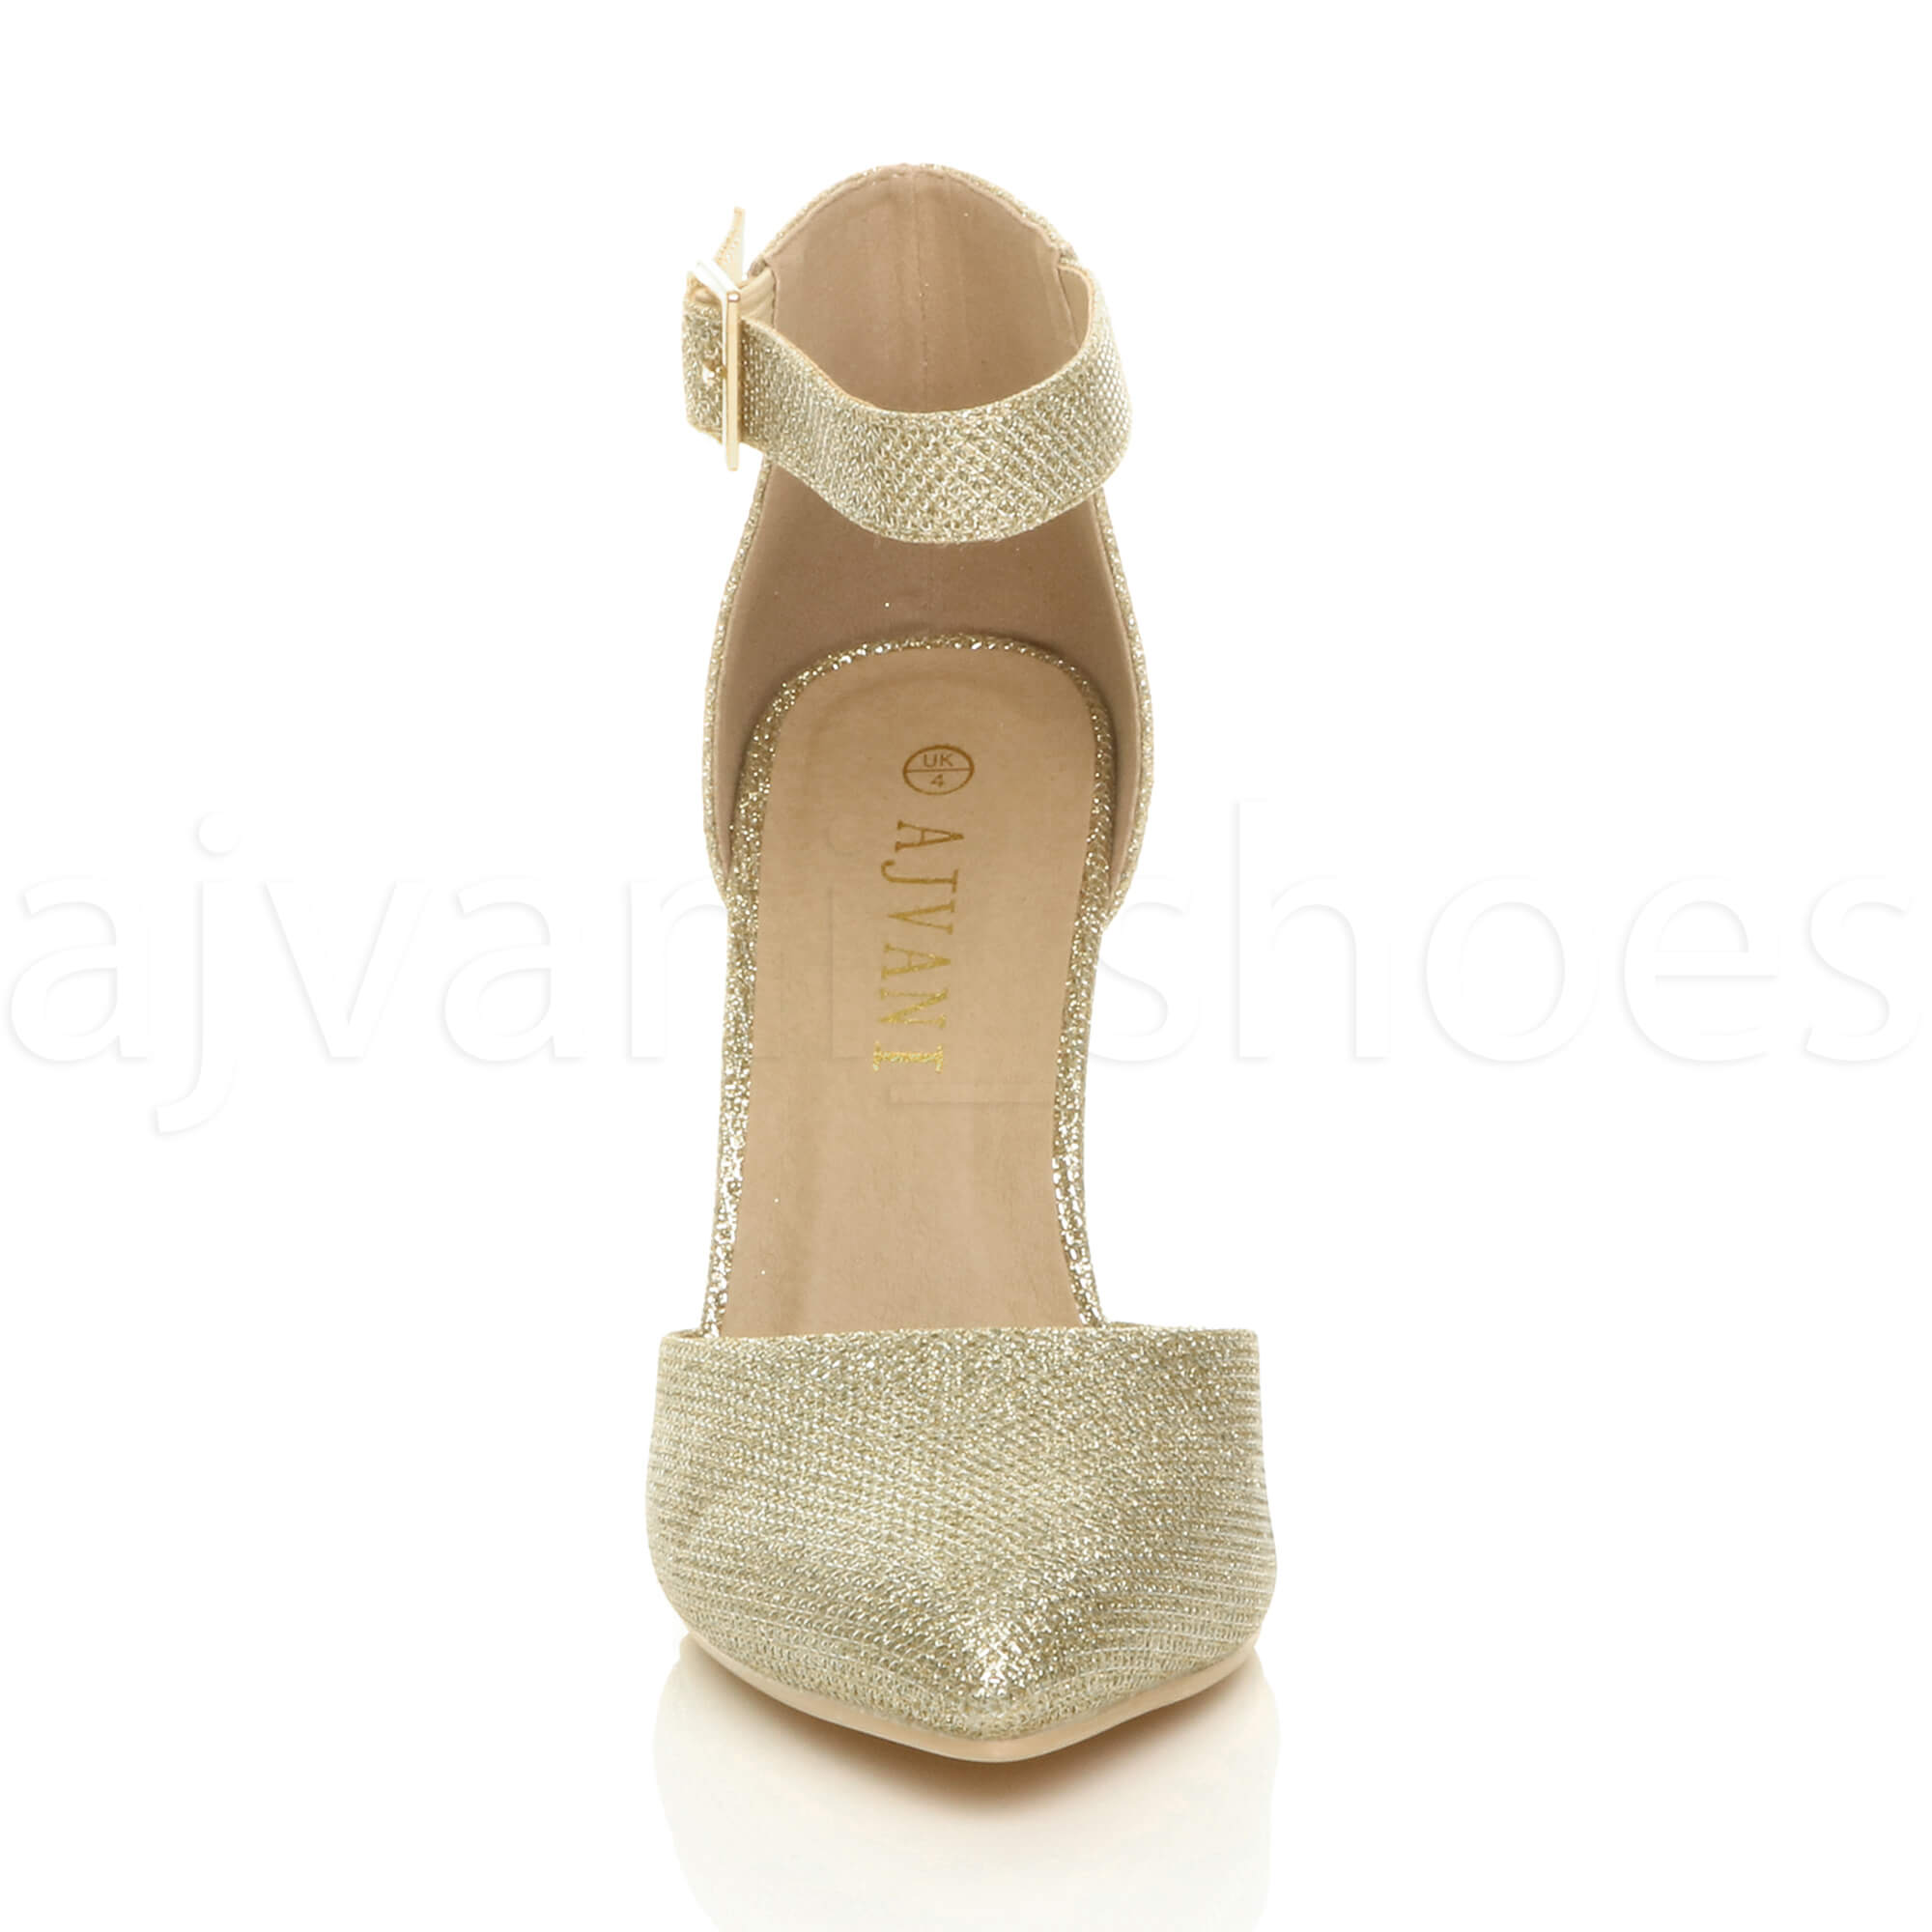 WOMENS-LADIES-HIGH-BLOCK-HEEL-ANKLE-STRAP-BUCKLE-POINTED-COURT-SHOES-SIZE thumbnail 76